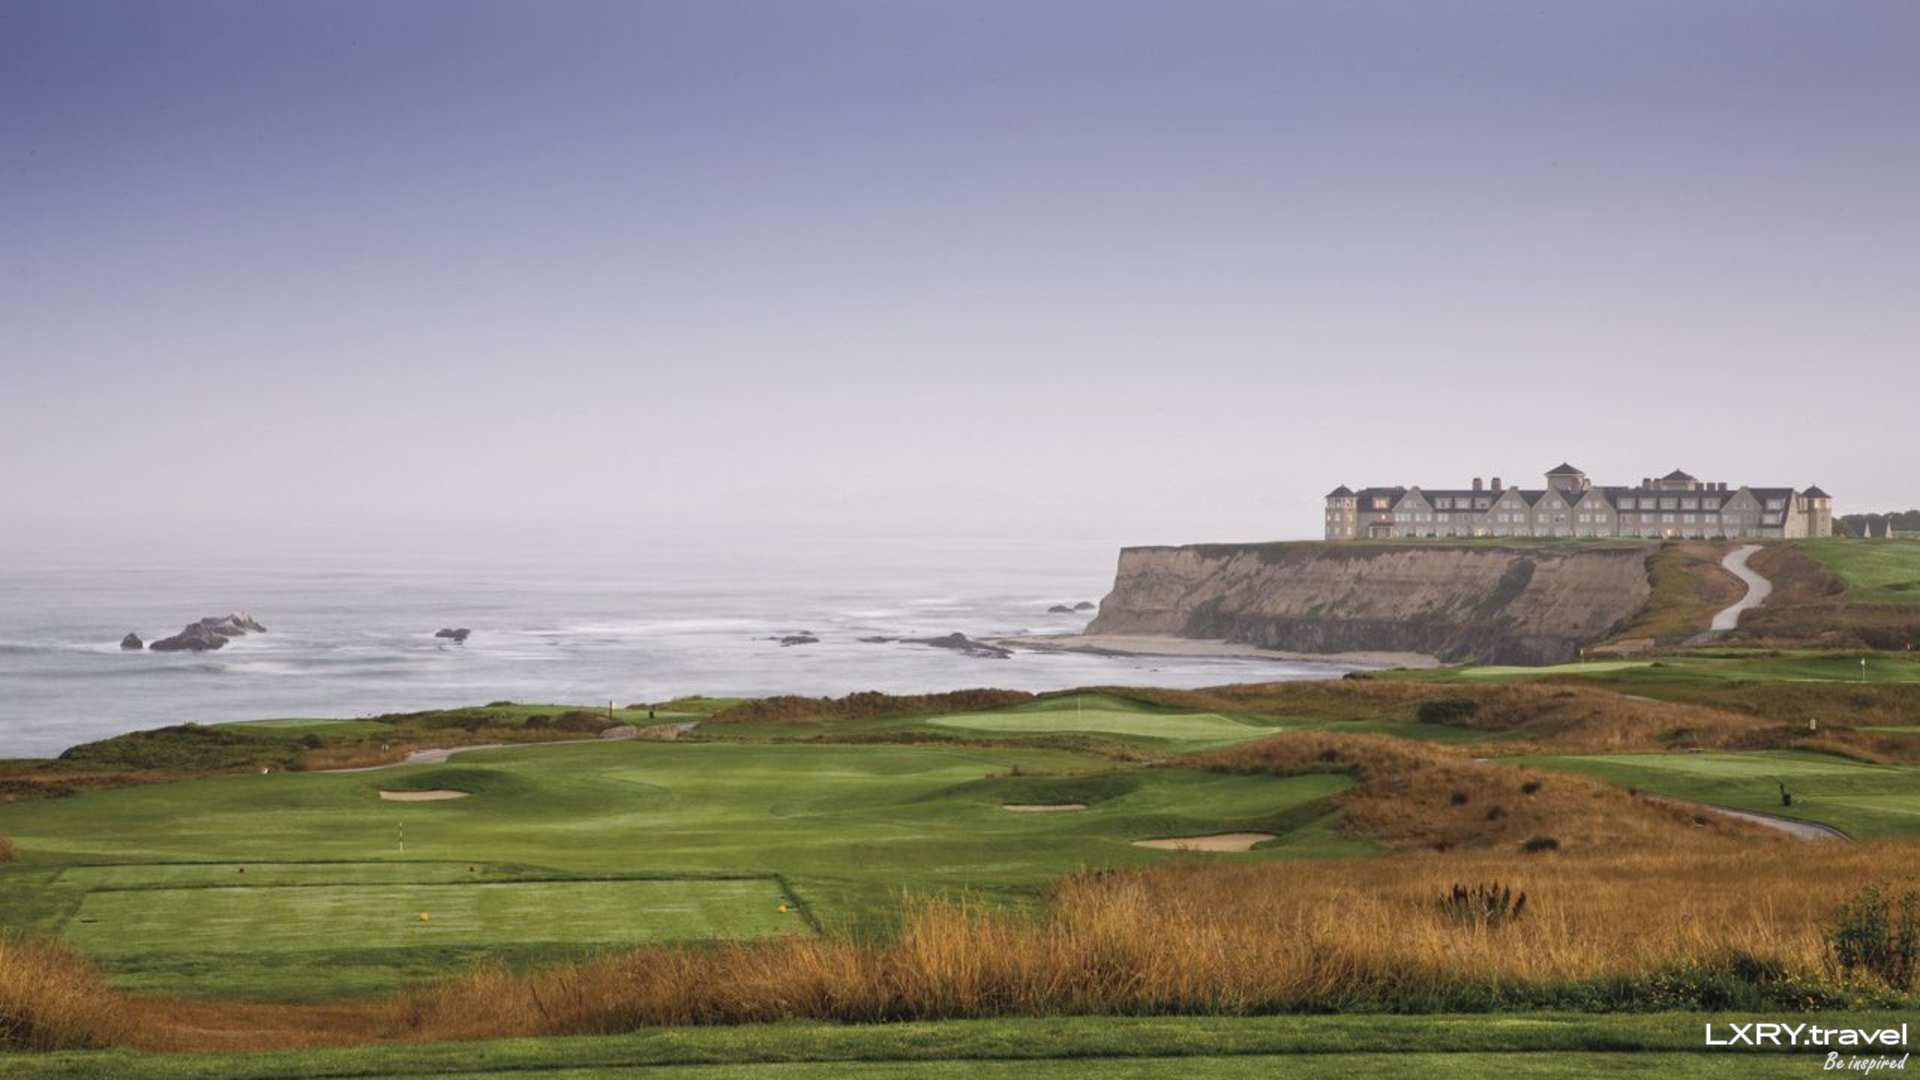 The Ritz-Carlton, Half Moon Bay 30/50